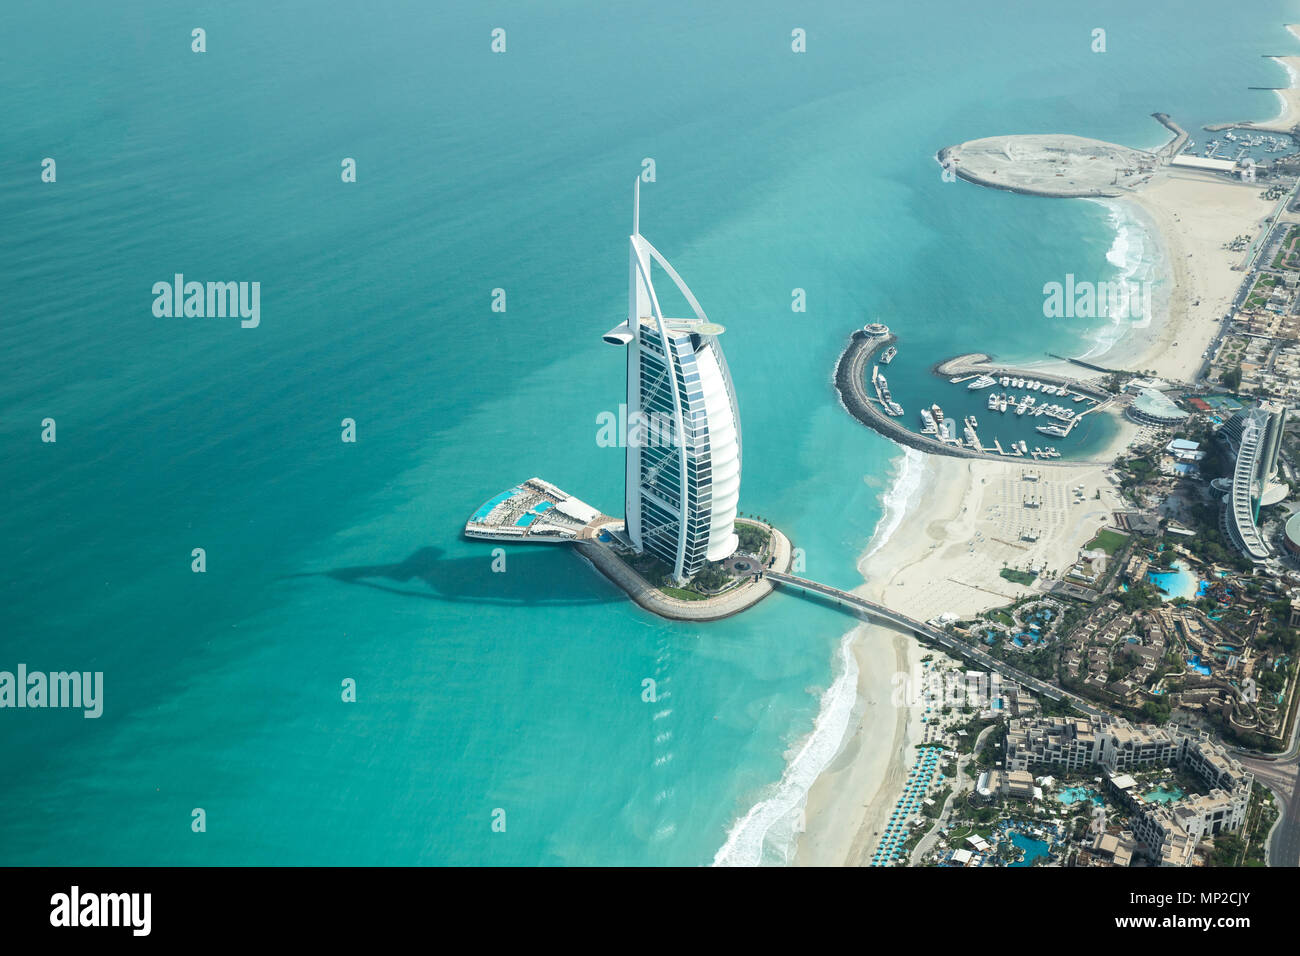 Dubai, UAE - May 18, 2018: Aerial view of Burj Al Arab luxury hotel on the coast of Persian Gulf on a clear sunny day. - Stock Image